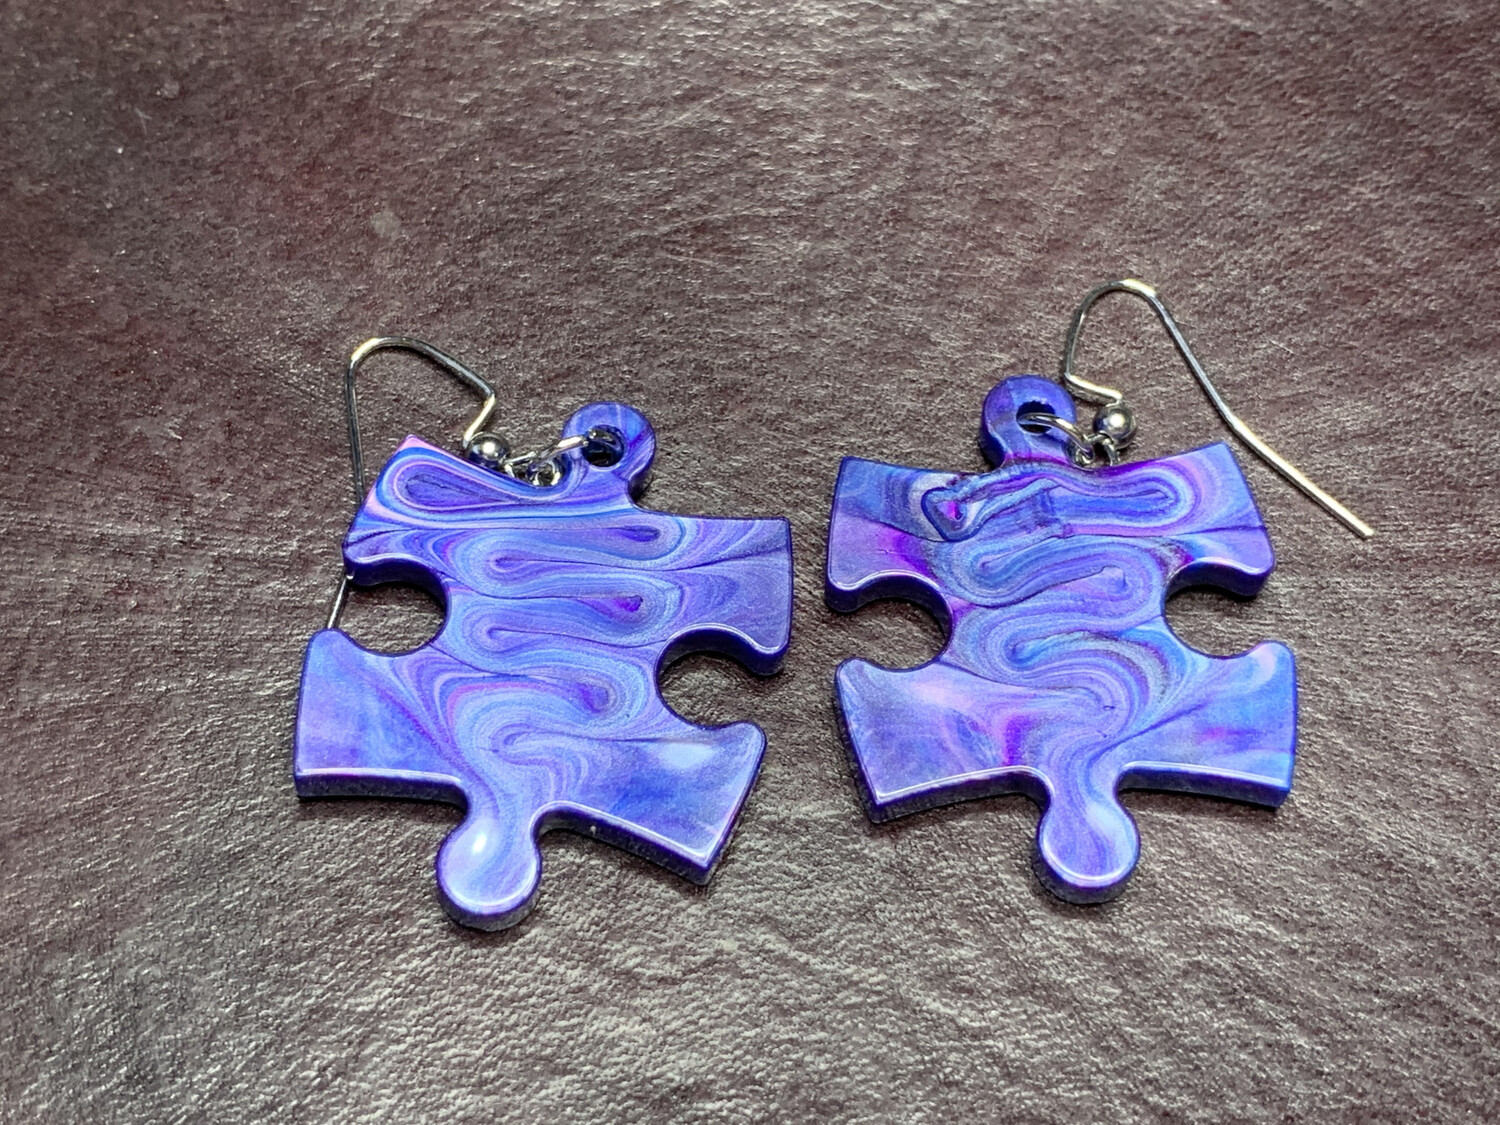 Puzzle Piece Puzzle Earrings - Chessex Dice Style Lustrous - Blue & Purple